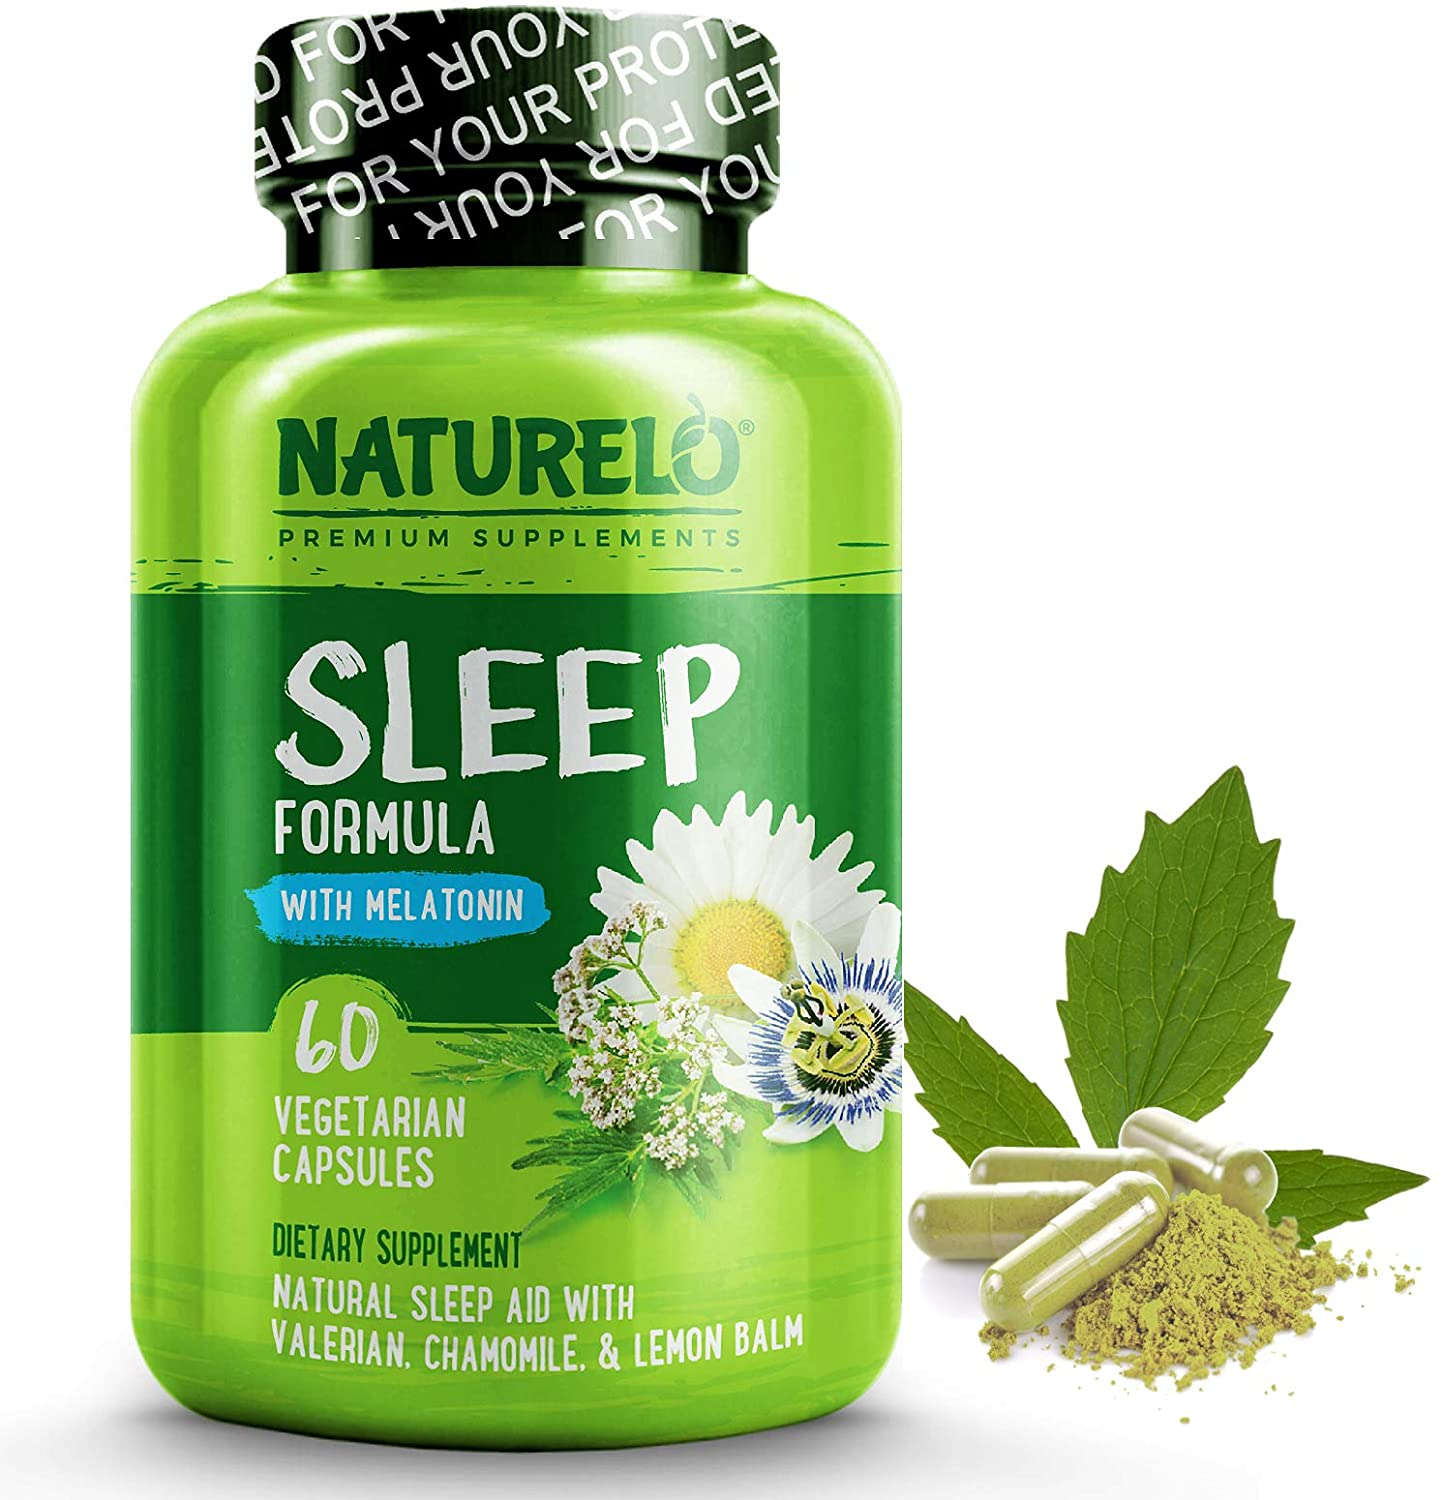 NATURELO Natural Sleep Aid - with Melatonin, Magnesium, GABA, Valerian Root, Lemon Balm, Chamomile Extracts - Best Natural Sleeping Aid - 60 Vegan Capsules